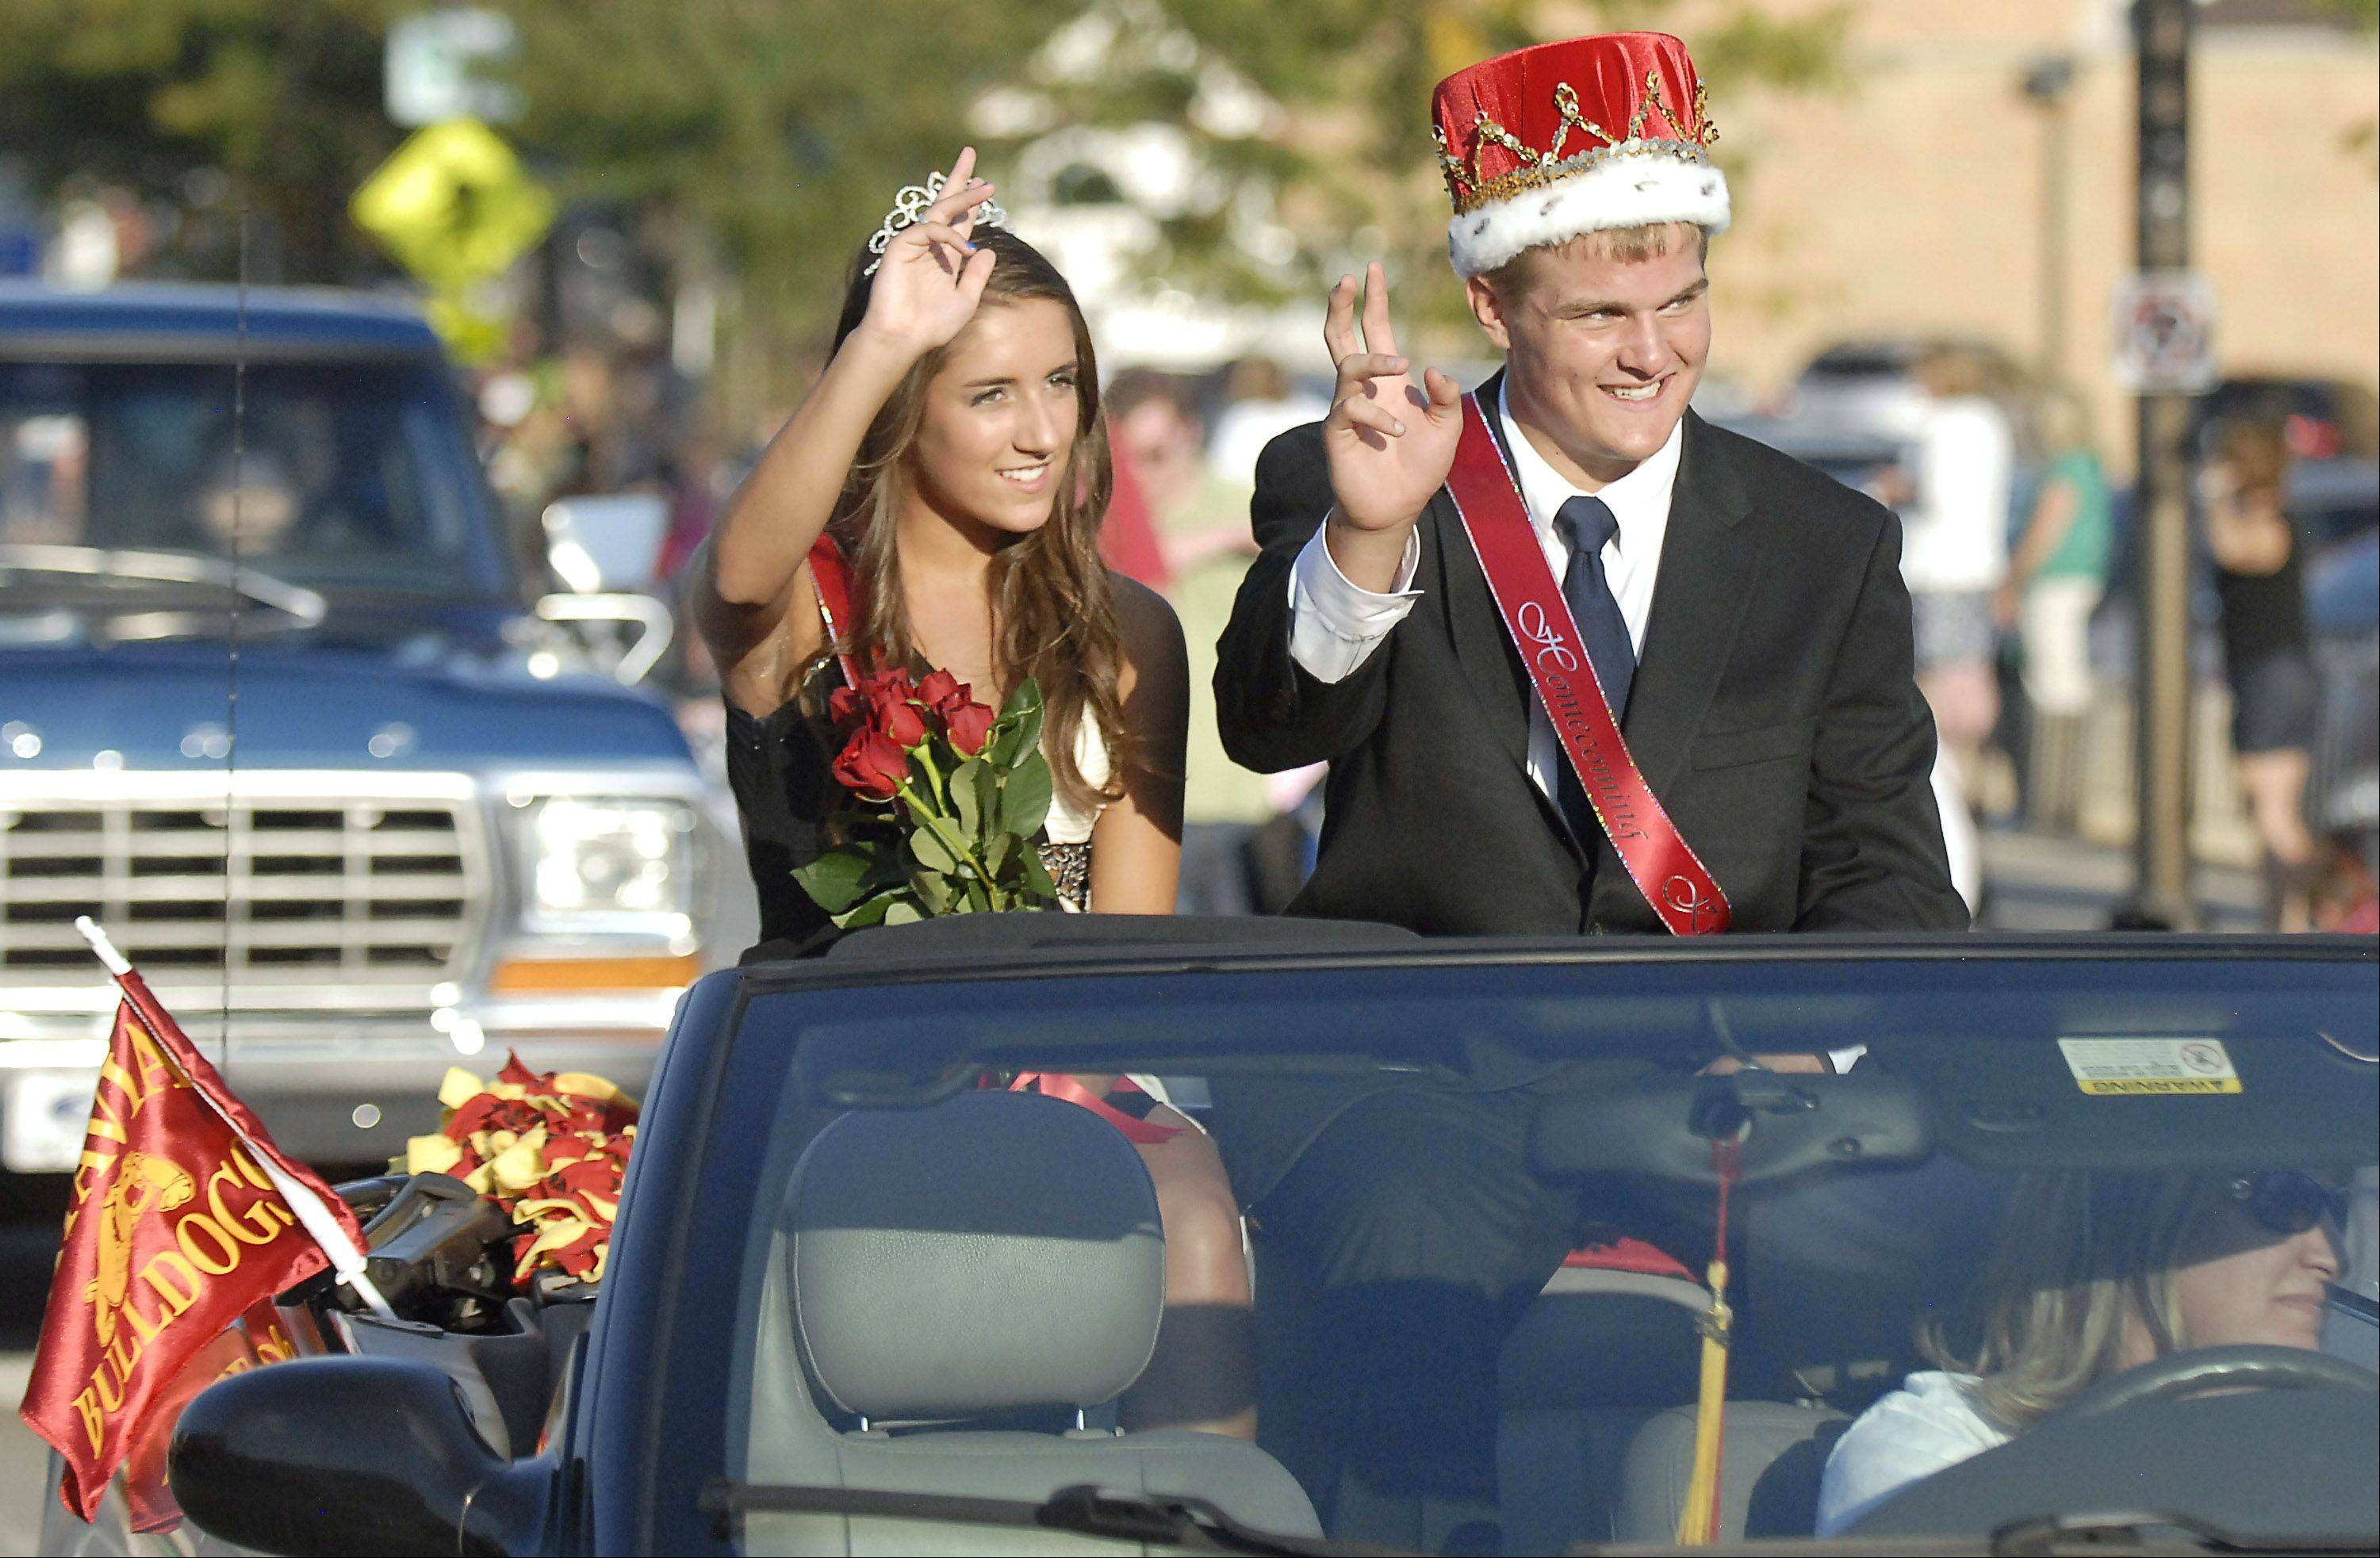 Batavia High School's Homecoming Queen Shannon McGee and King Mickey Watson participate in the school's Homecoming parade.